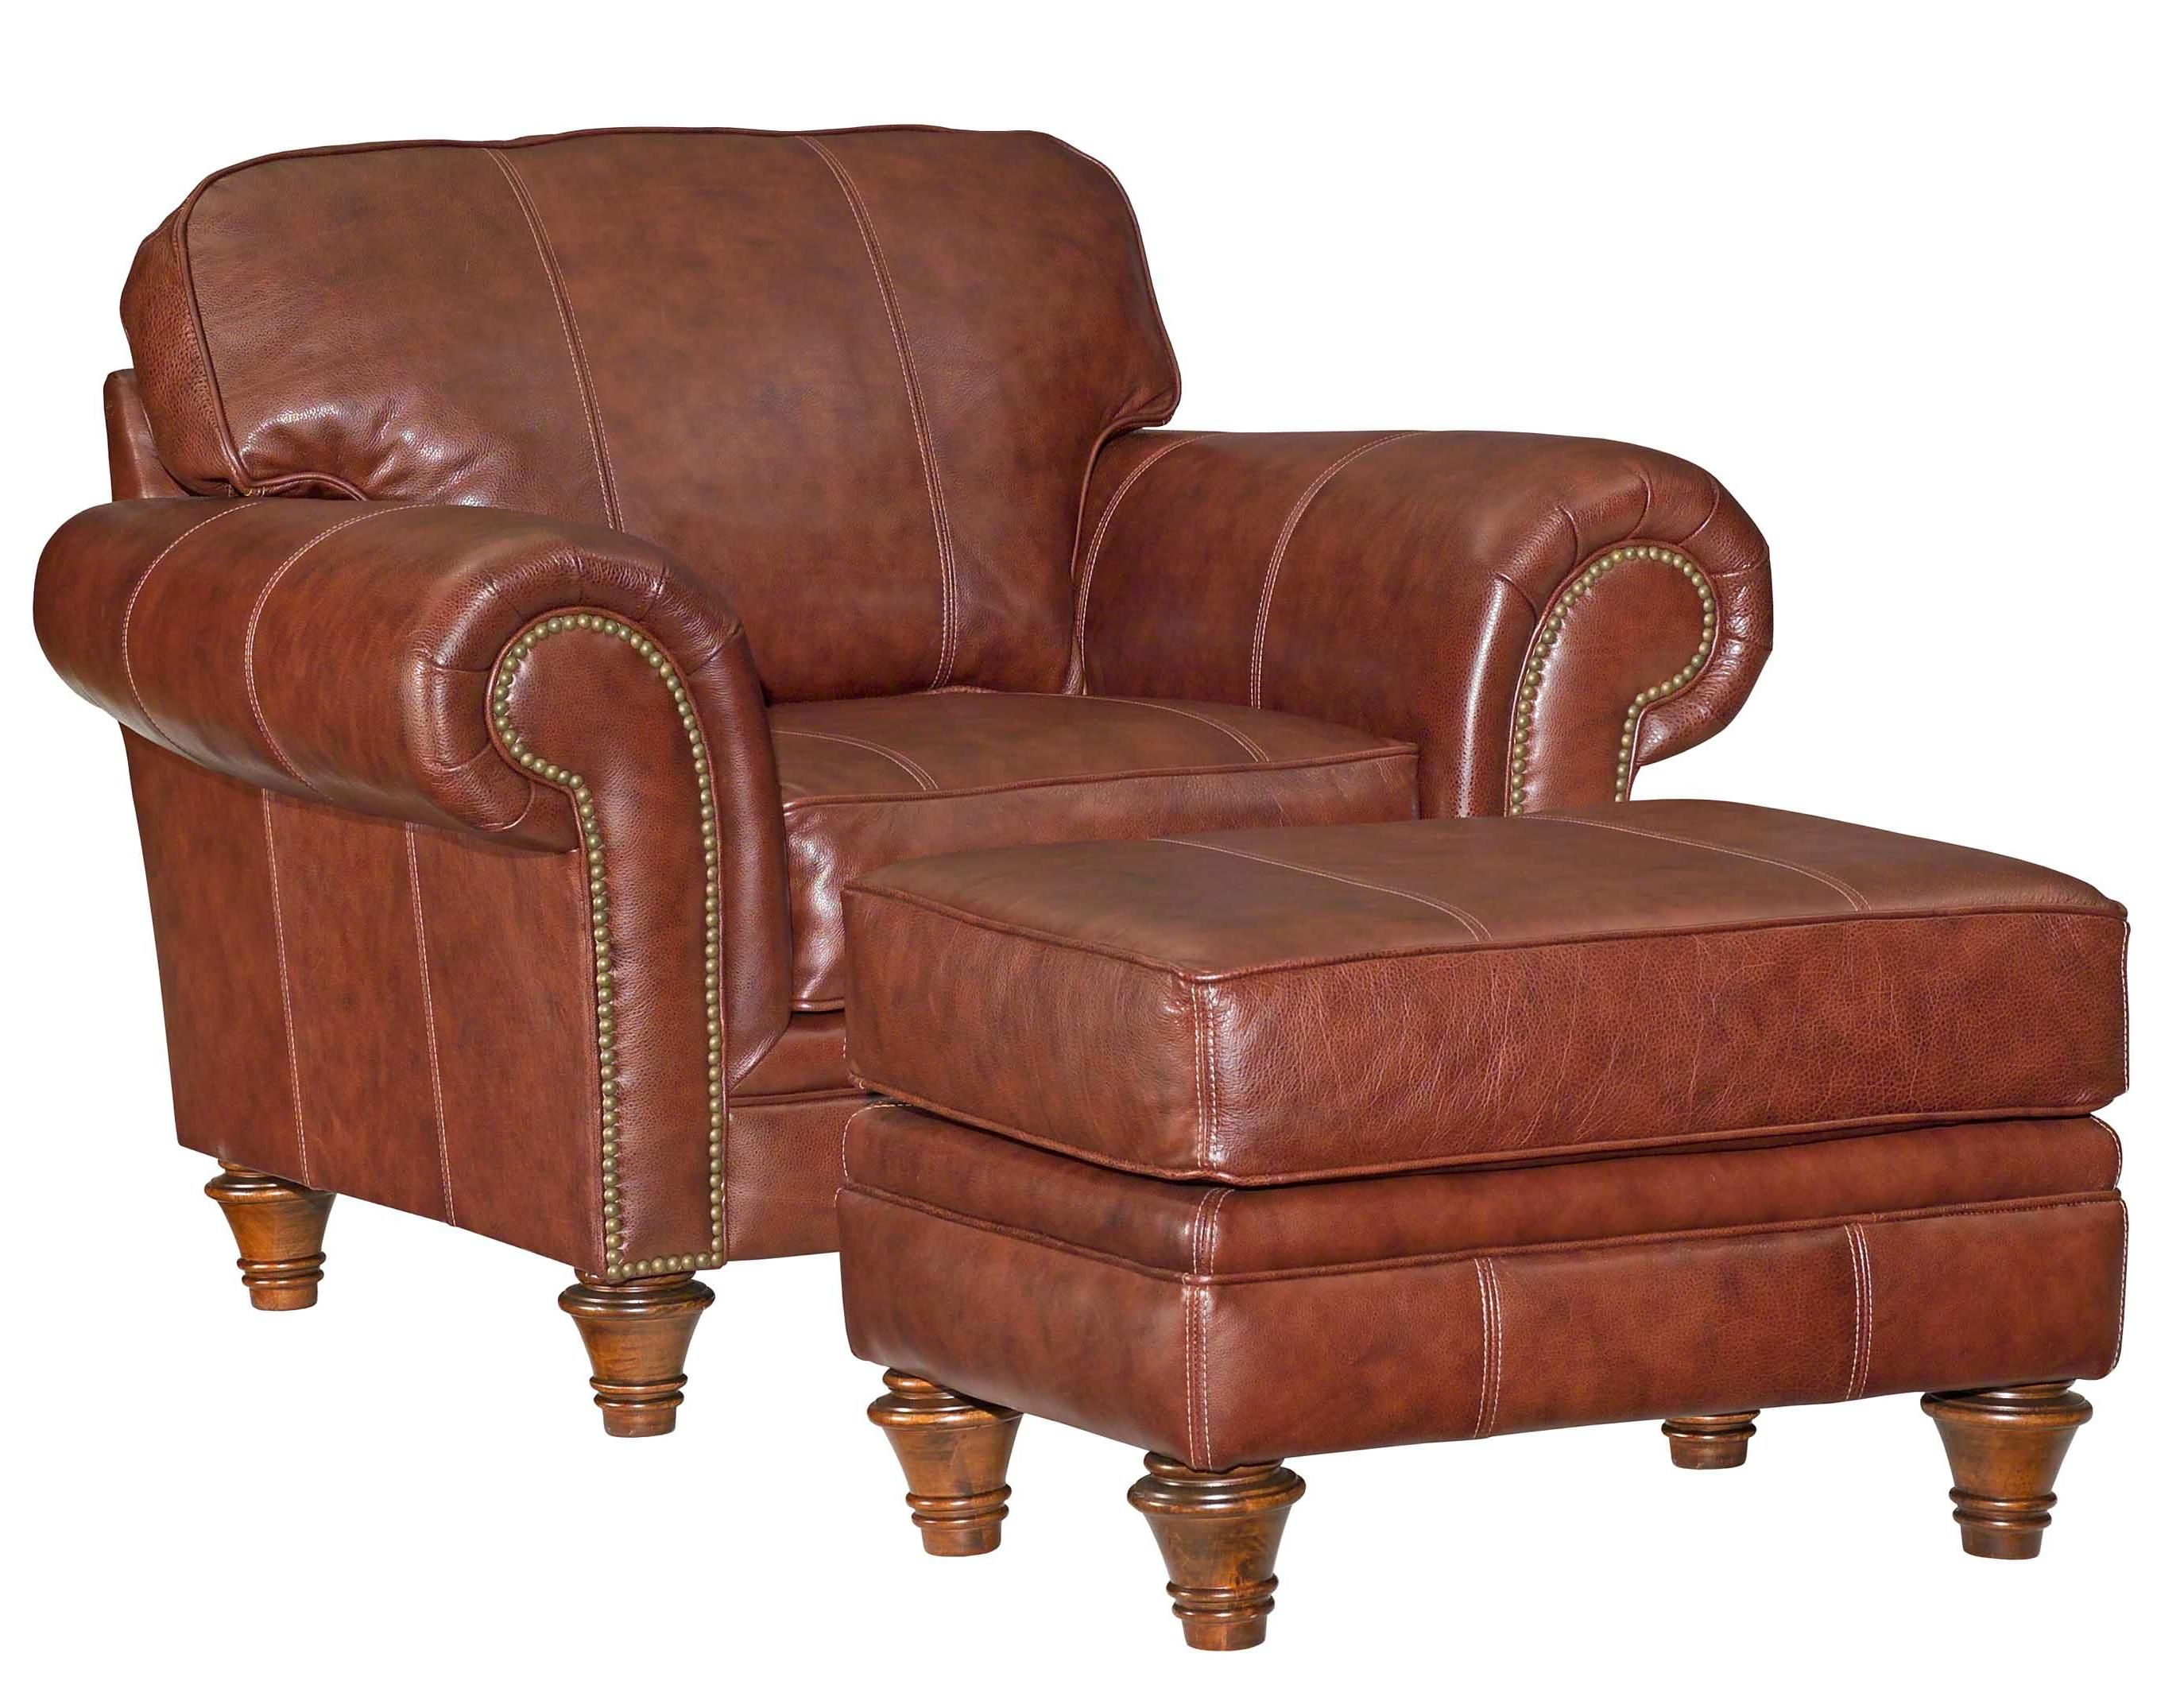 Becker furniture - I requested a quote